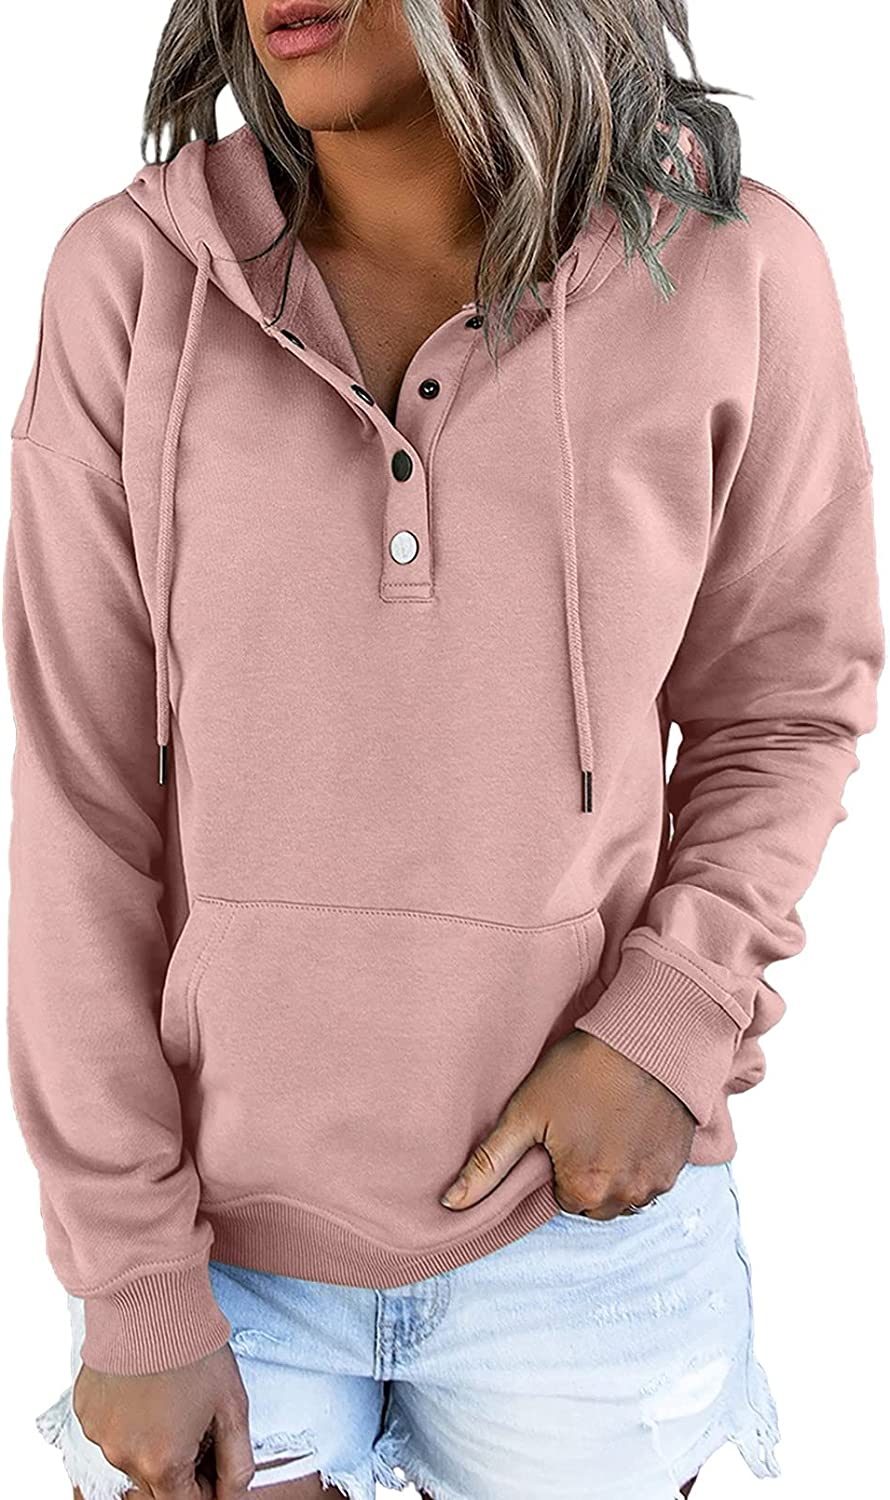 Dokotoo Womens Casual Button Collar Drawstring Long Sleeve Hoodies Pullover Sweatshirts Hooded Tops